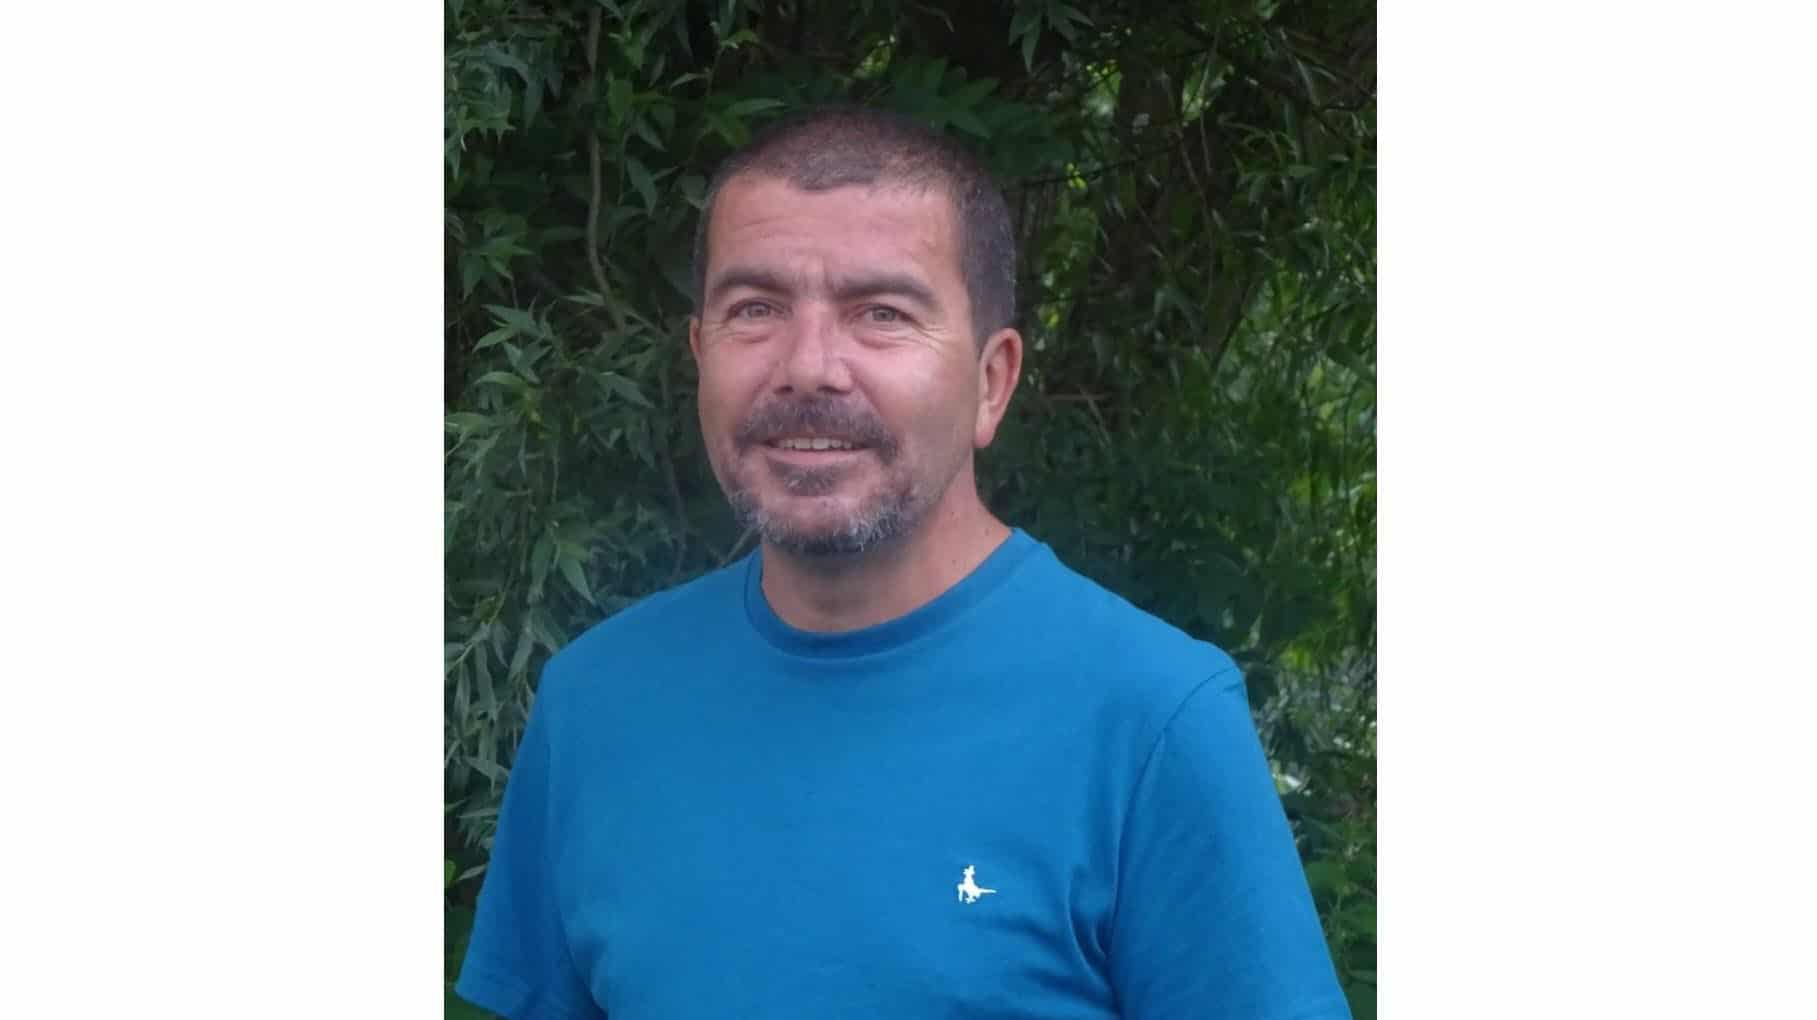 Let's get to work: ETIM International welcomes Alan Fisher to its team